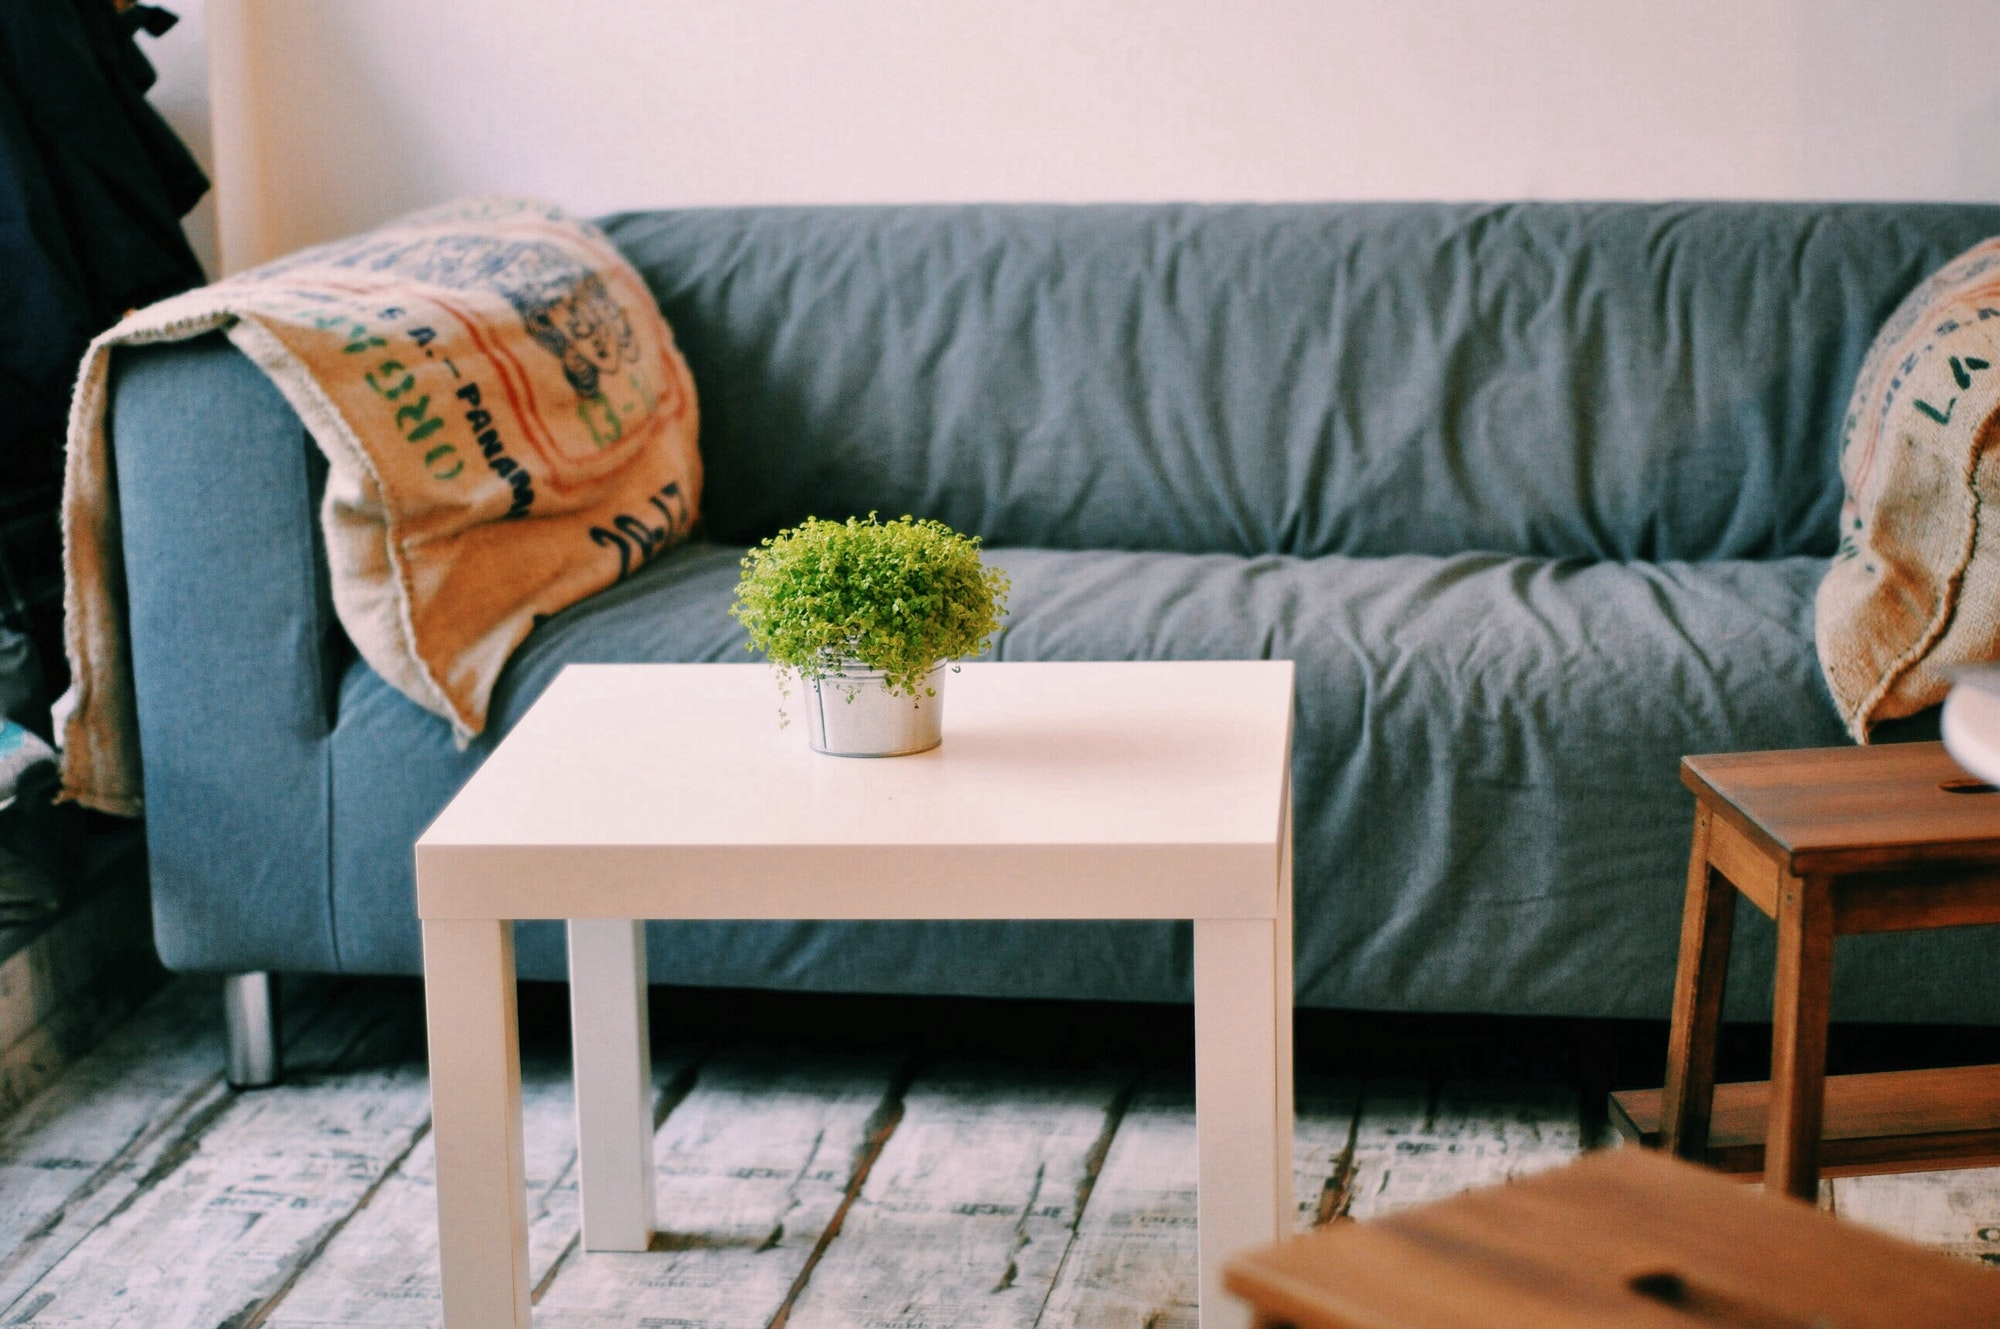 A sofa with cushions and a coffee table